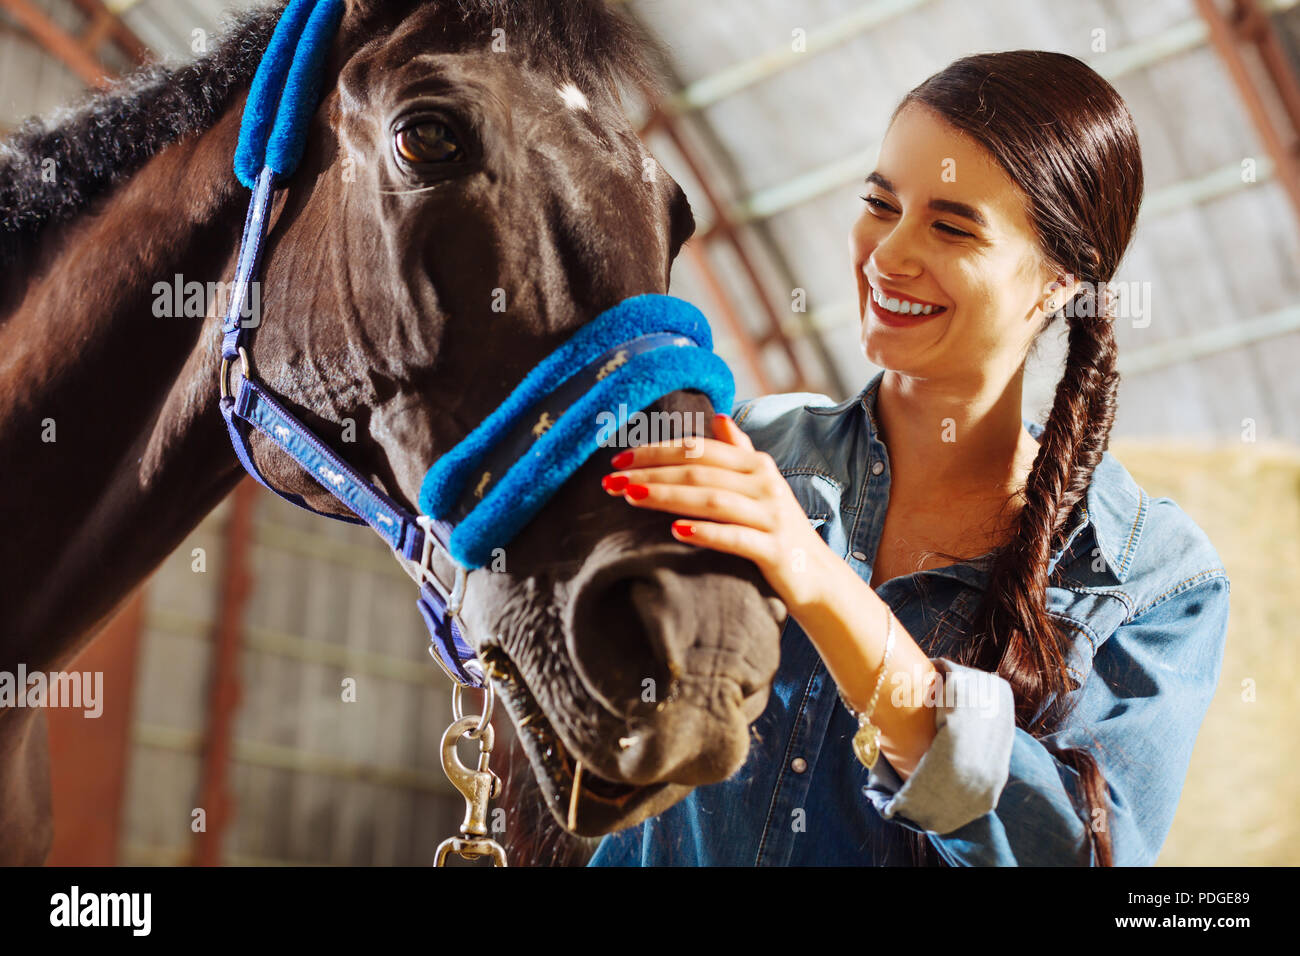 Beautiful woman with red nails smiling broadly looking at horse - Stock Image